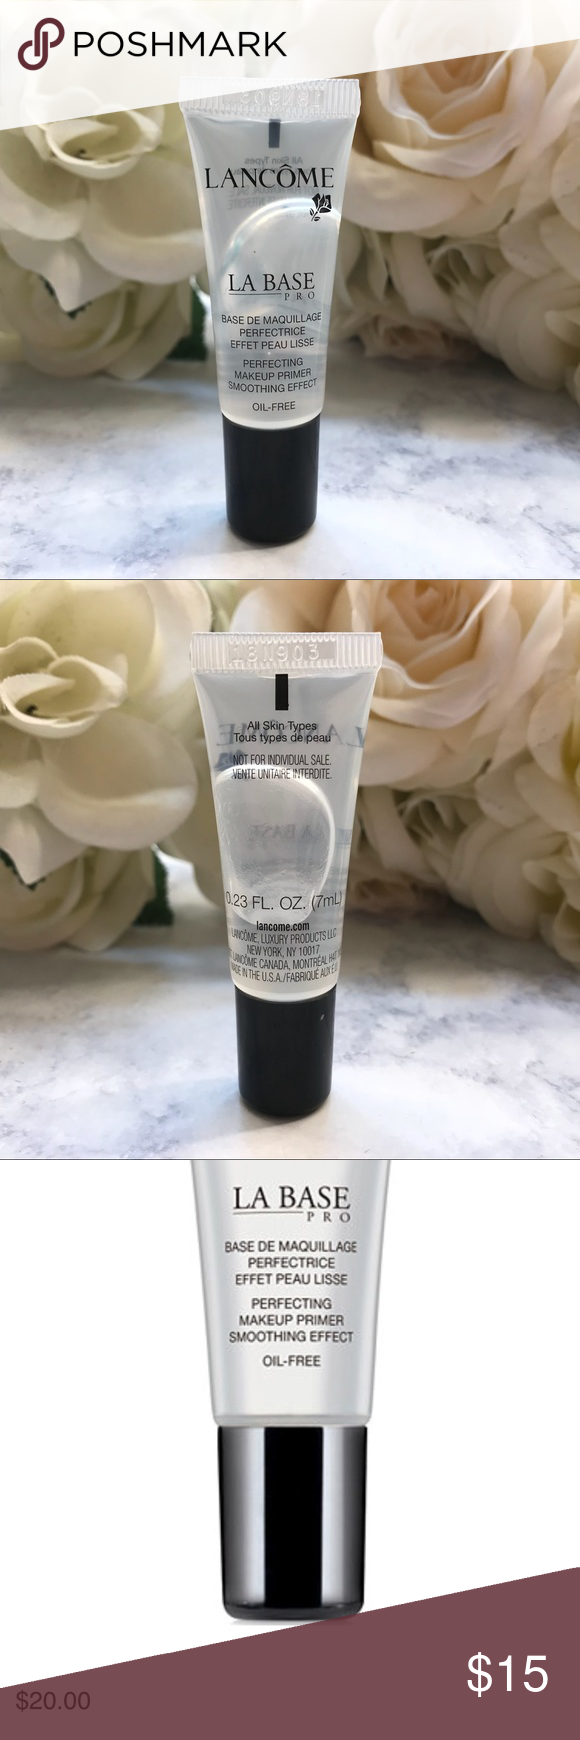 Foundation Primer LANCÔME NEW/NEVER BEEN OPENED/USED